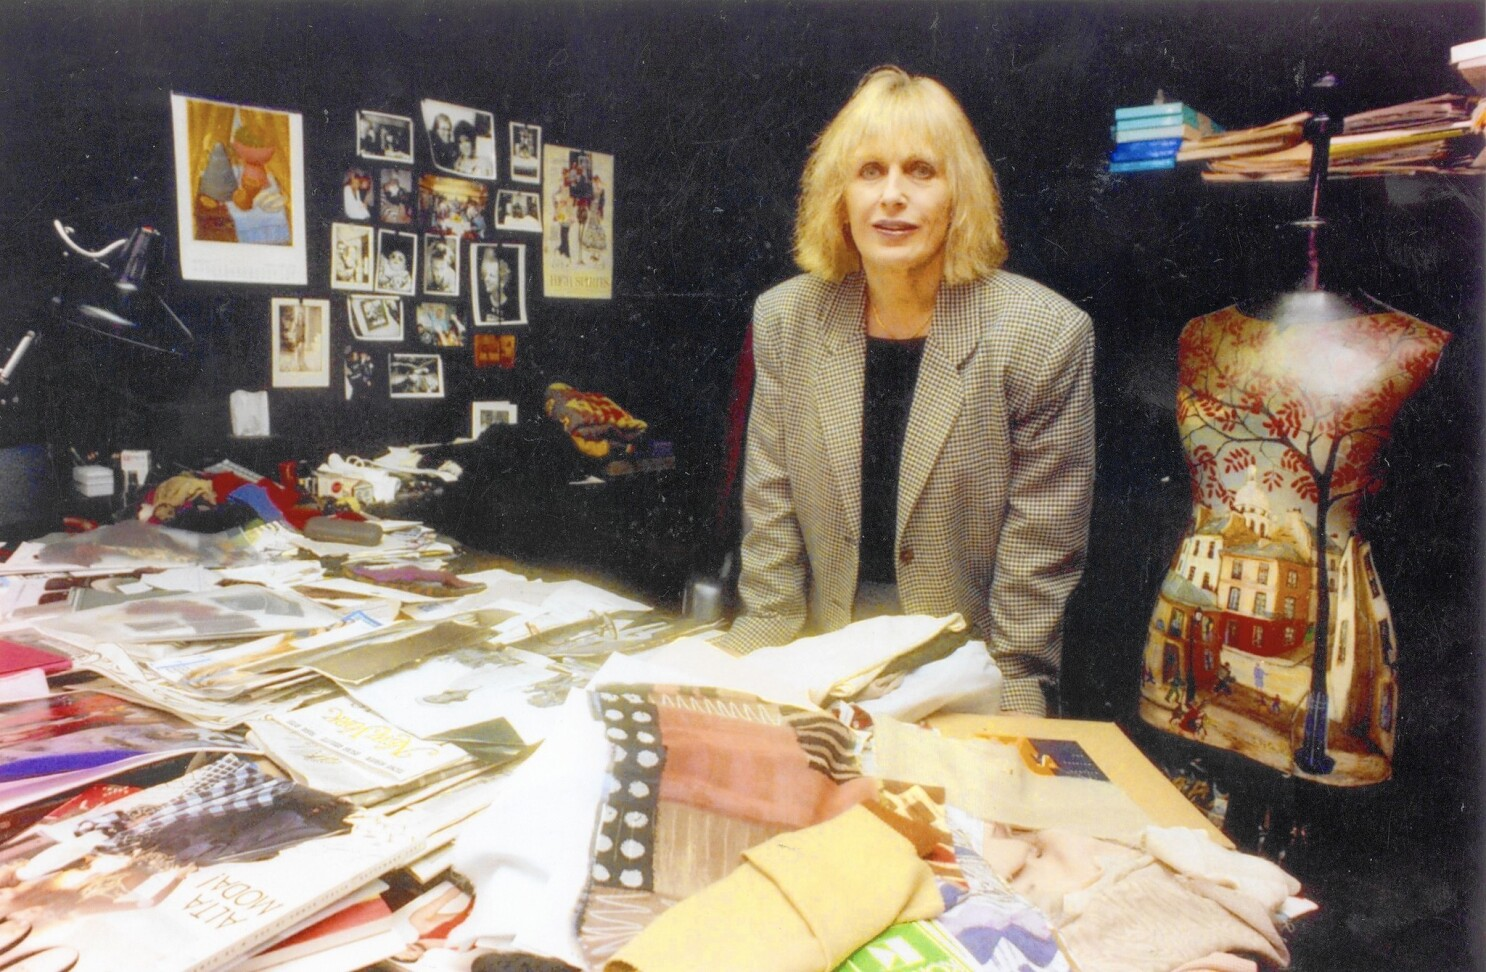 Carole Little Designer Of Working Women S Fashion Dies At 80 Los Angeles Times